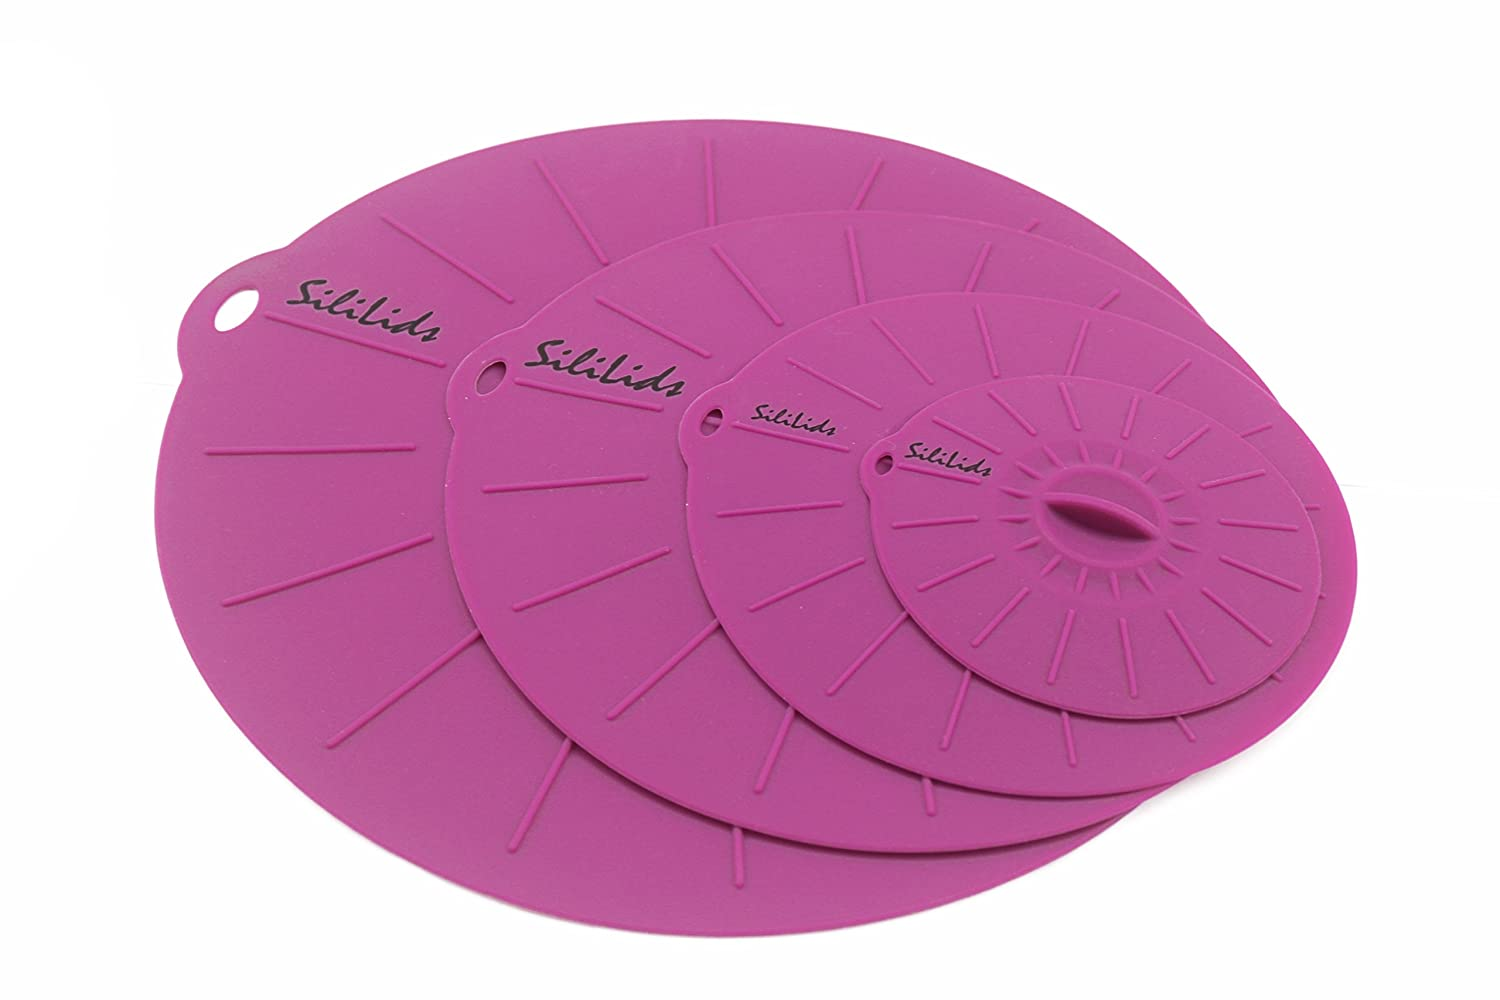 """Microwavable Silicone Sealing Lids, by Sililids. Pure Silicone BPA Free Plastic Alternative for Food Storage & Oil Splatter Protection. Dishwasher Safe. Set of 4: 4"""", 6"""", 8"""", 10"""""""